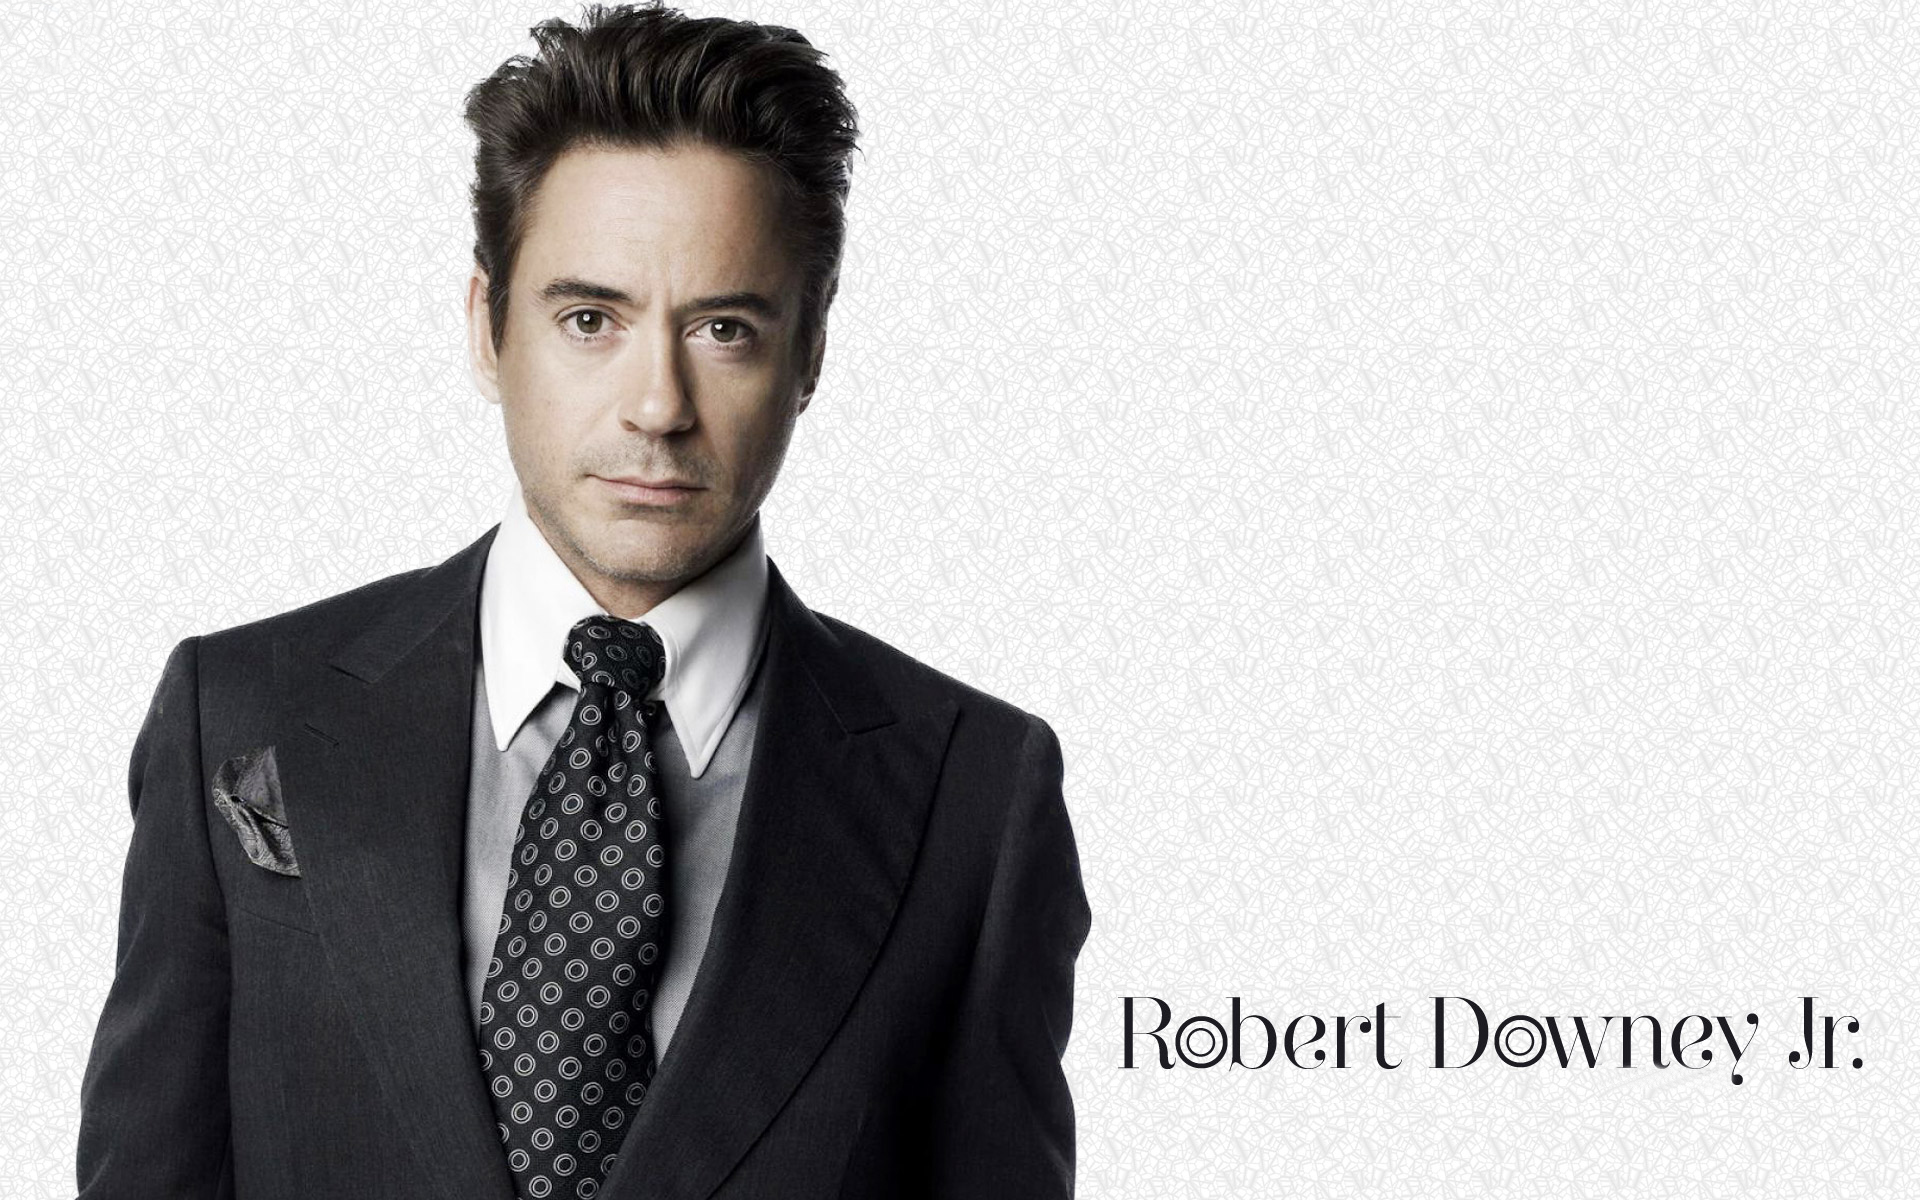 Free hd wallpaper robert downey jr - Robert Downey Jr Hd Wallpaper